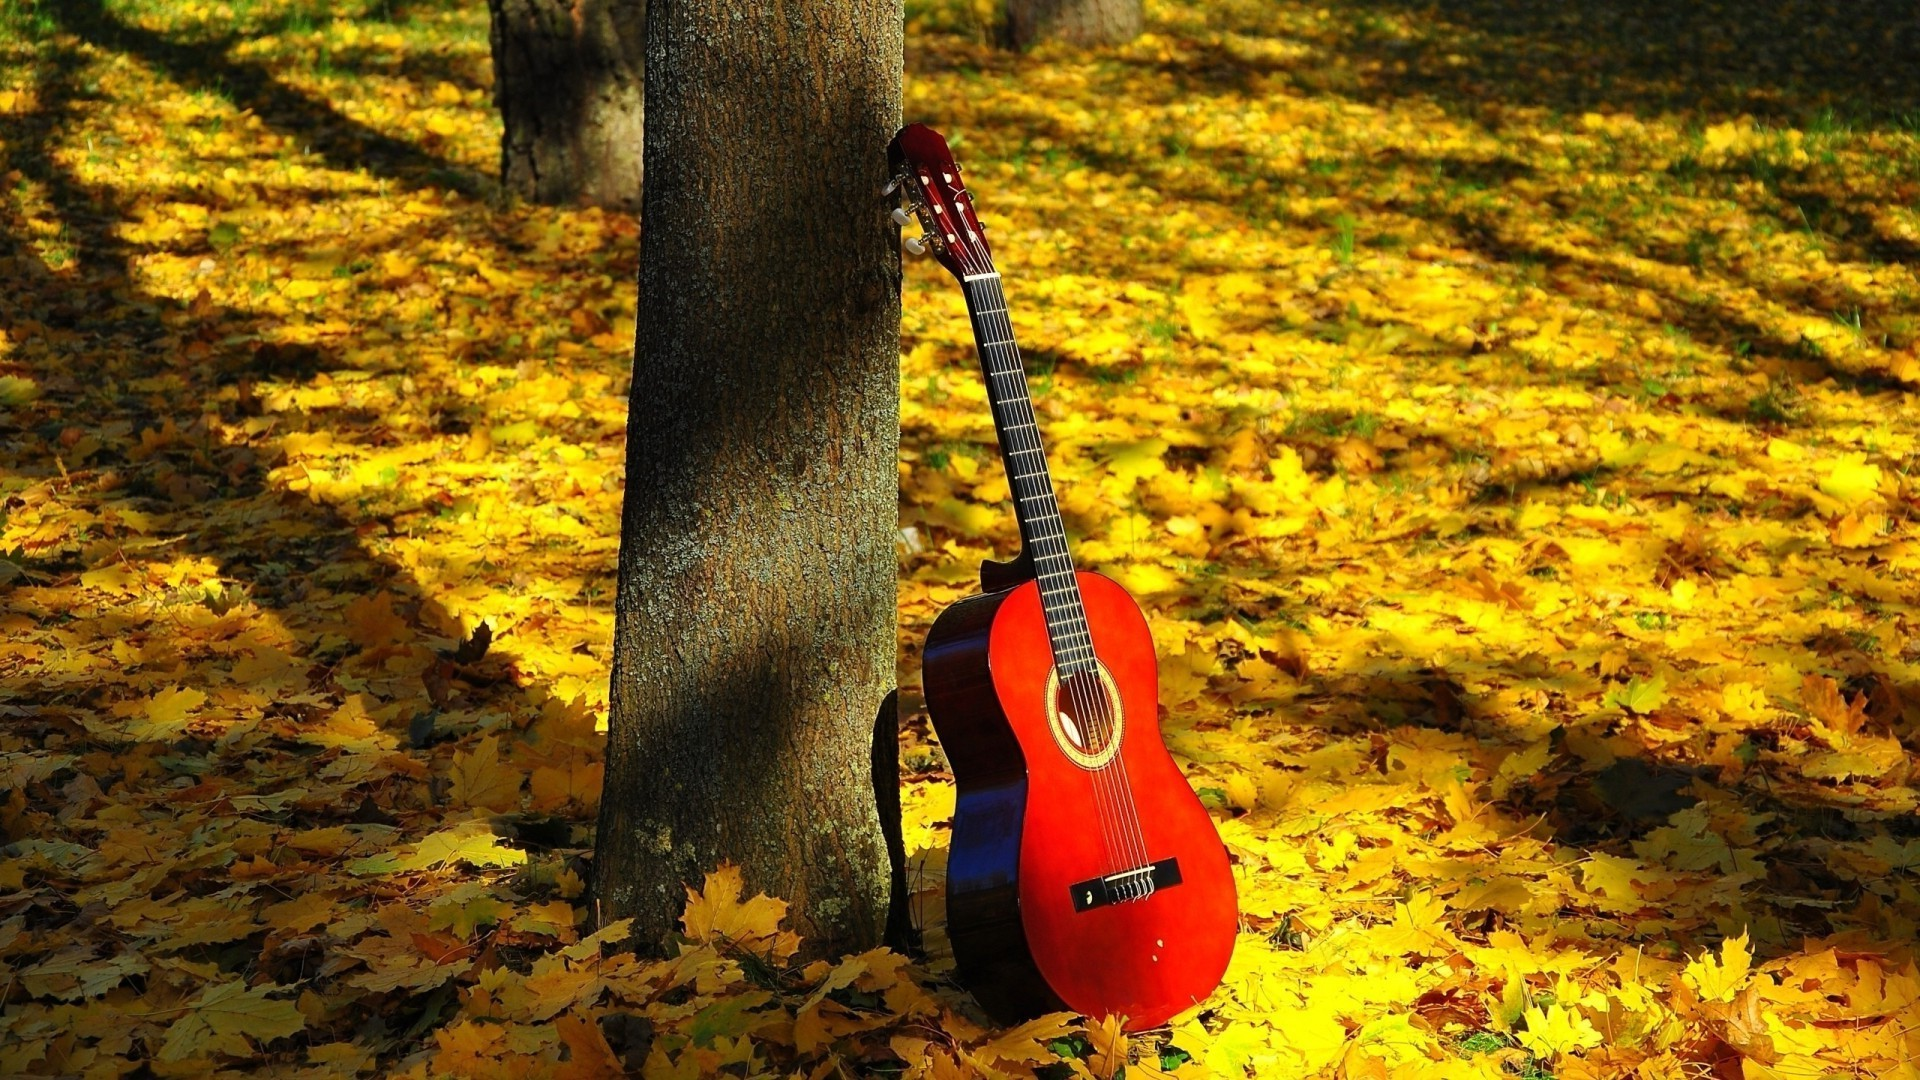 musical instruments wood fall nature outdoors leaf tree park season one daylight